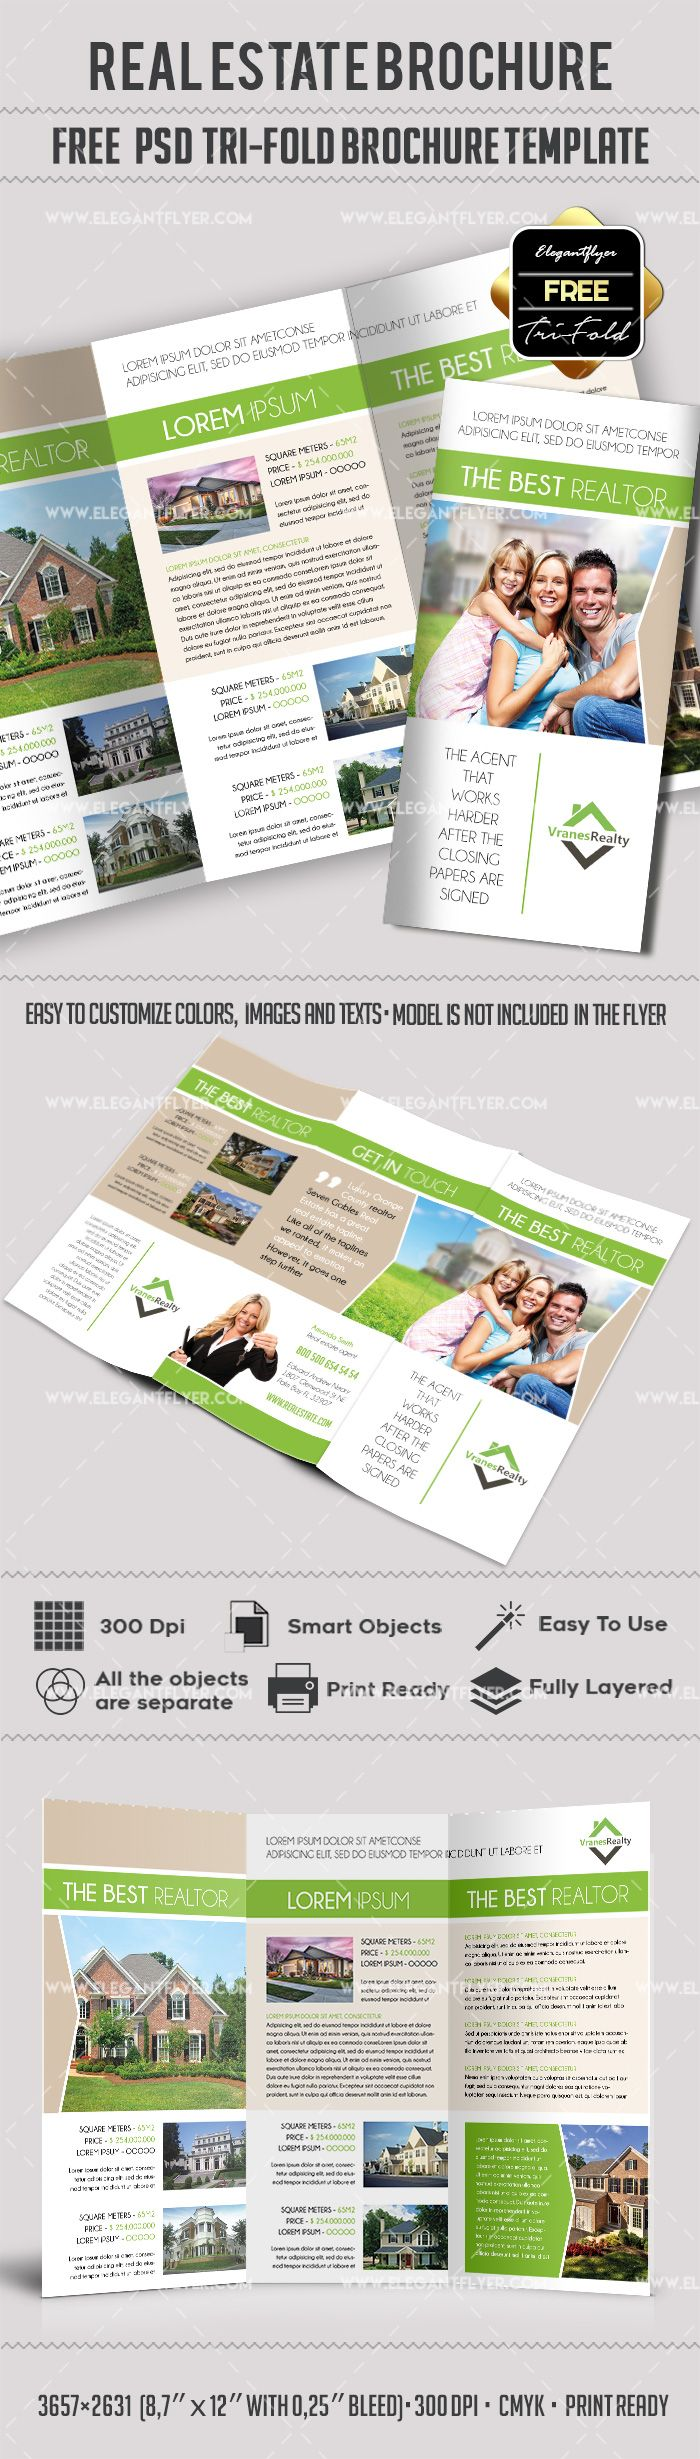 Free Real Estate Trifold Brochure Template in PSD | DESIGN | Pinterest